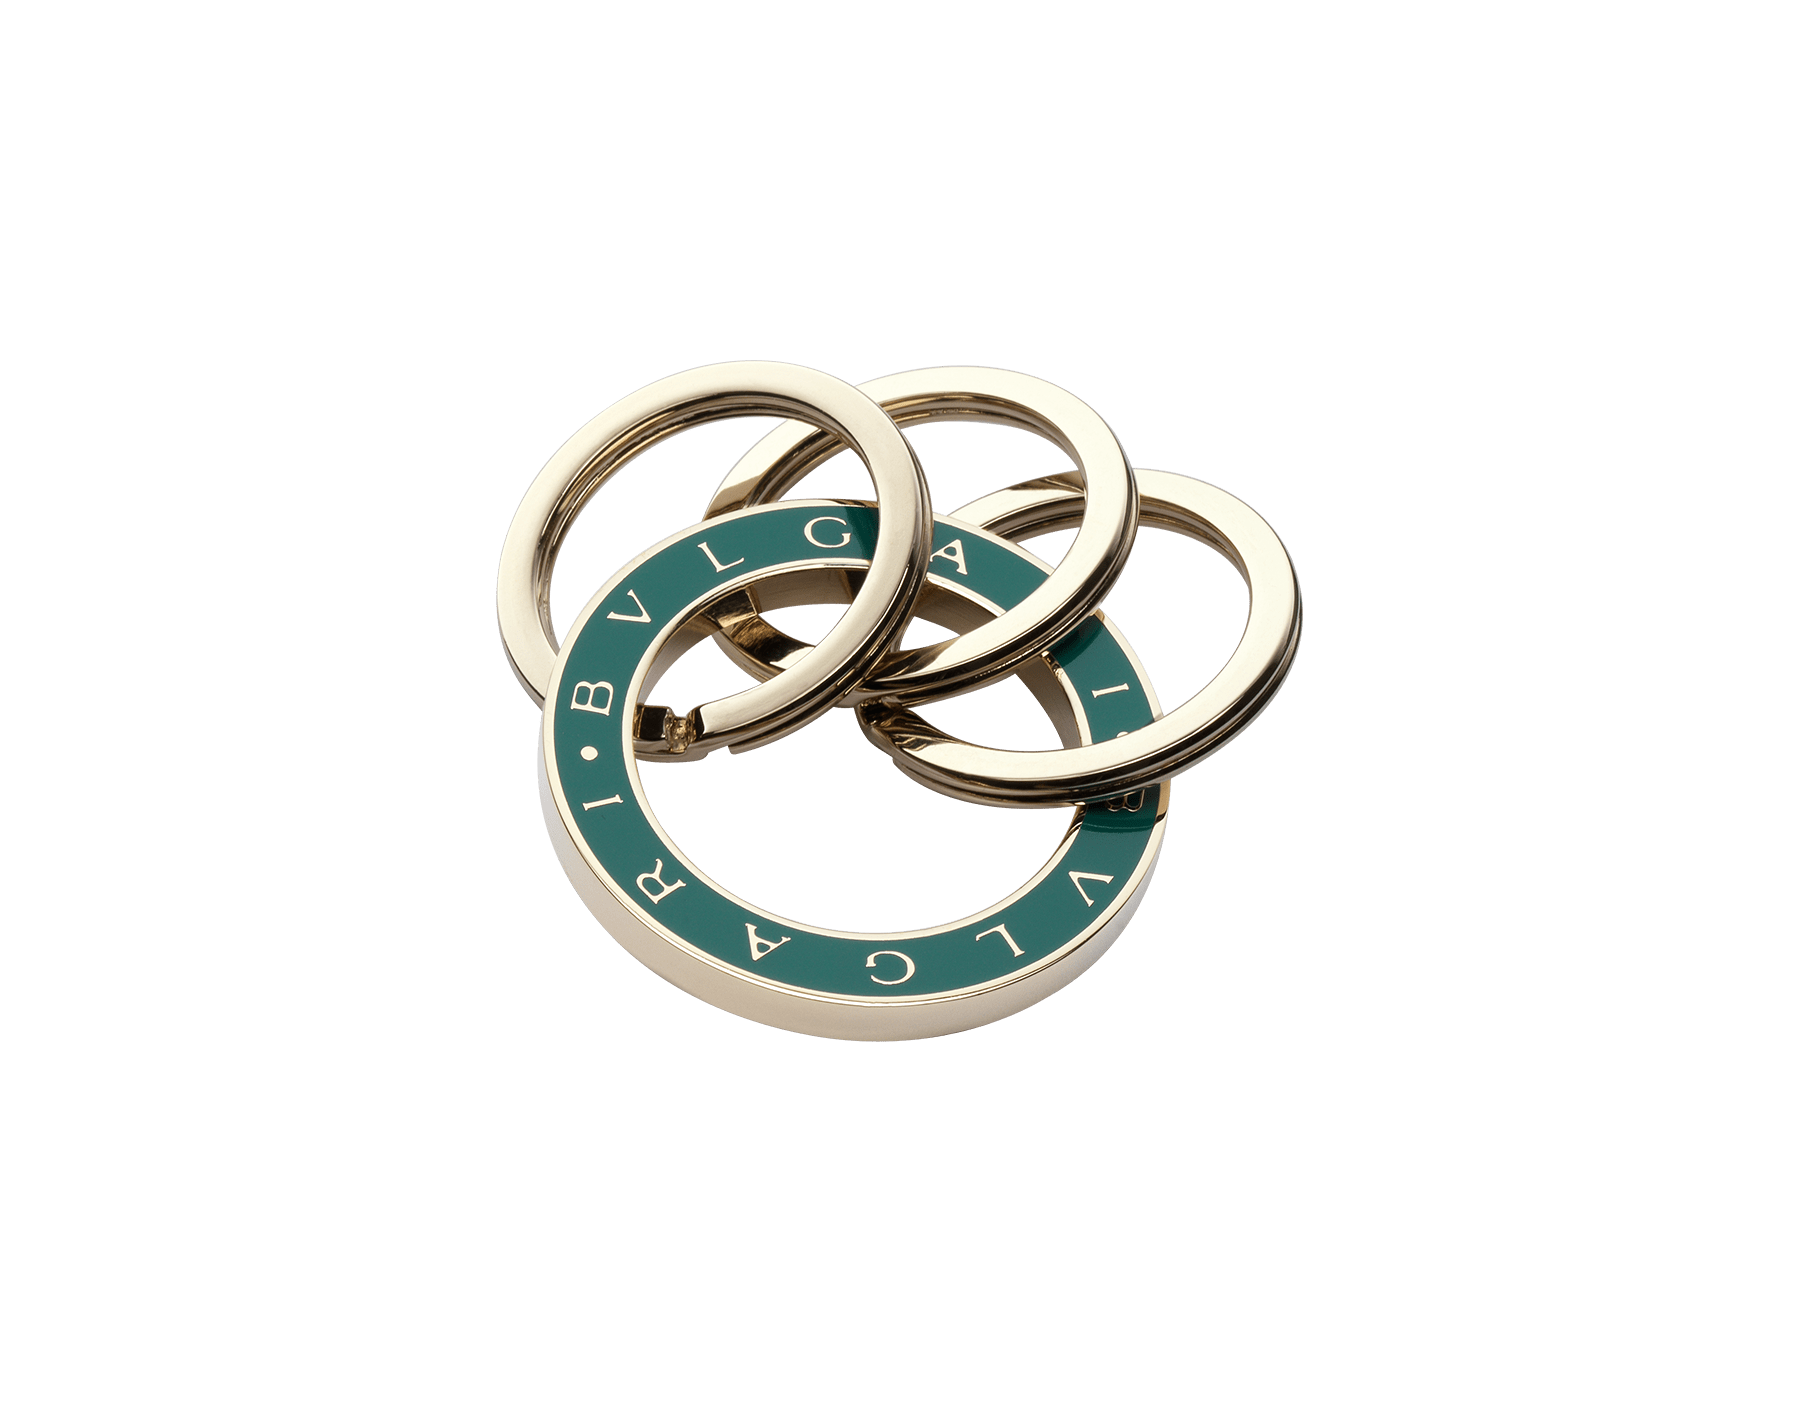 """BVLGARI BVLGARI"" keyring in light gold plated brass enameled in malachite green and enriched with three brisé rings and the iconic logo decoration. 35278 image 1"